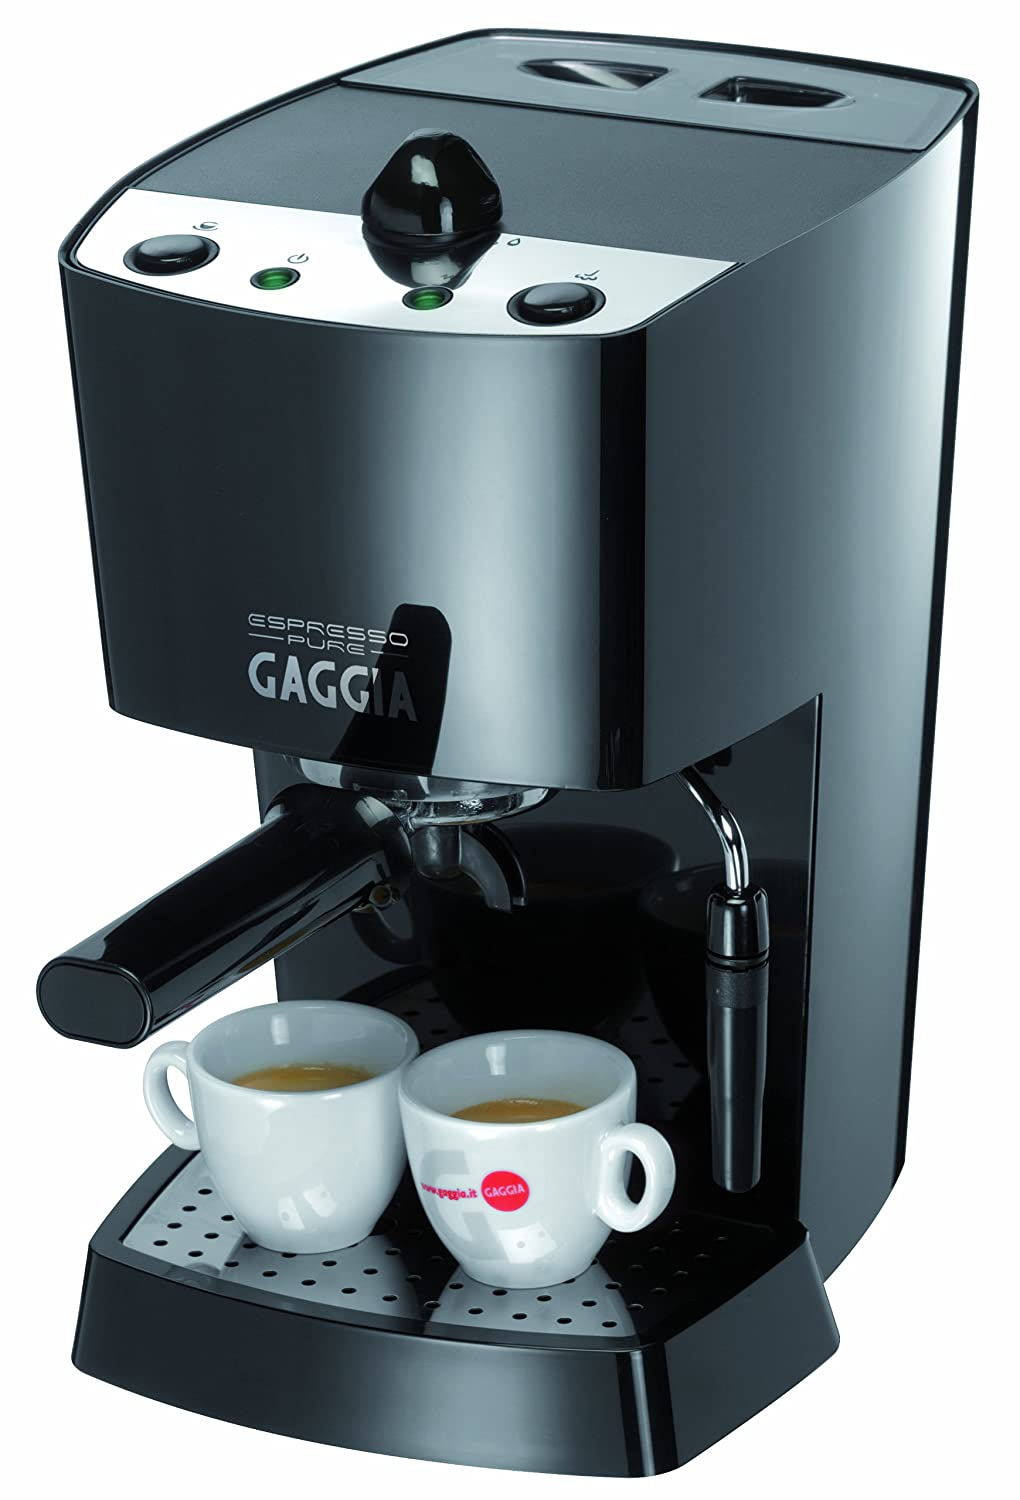 I want a sub-USD 200 espresso machine for my office. : Coffee